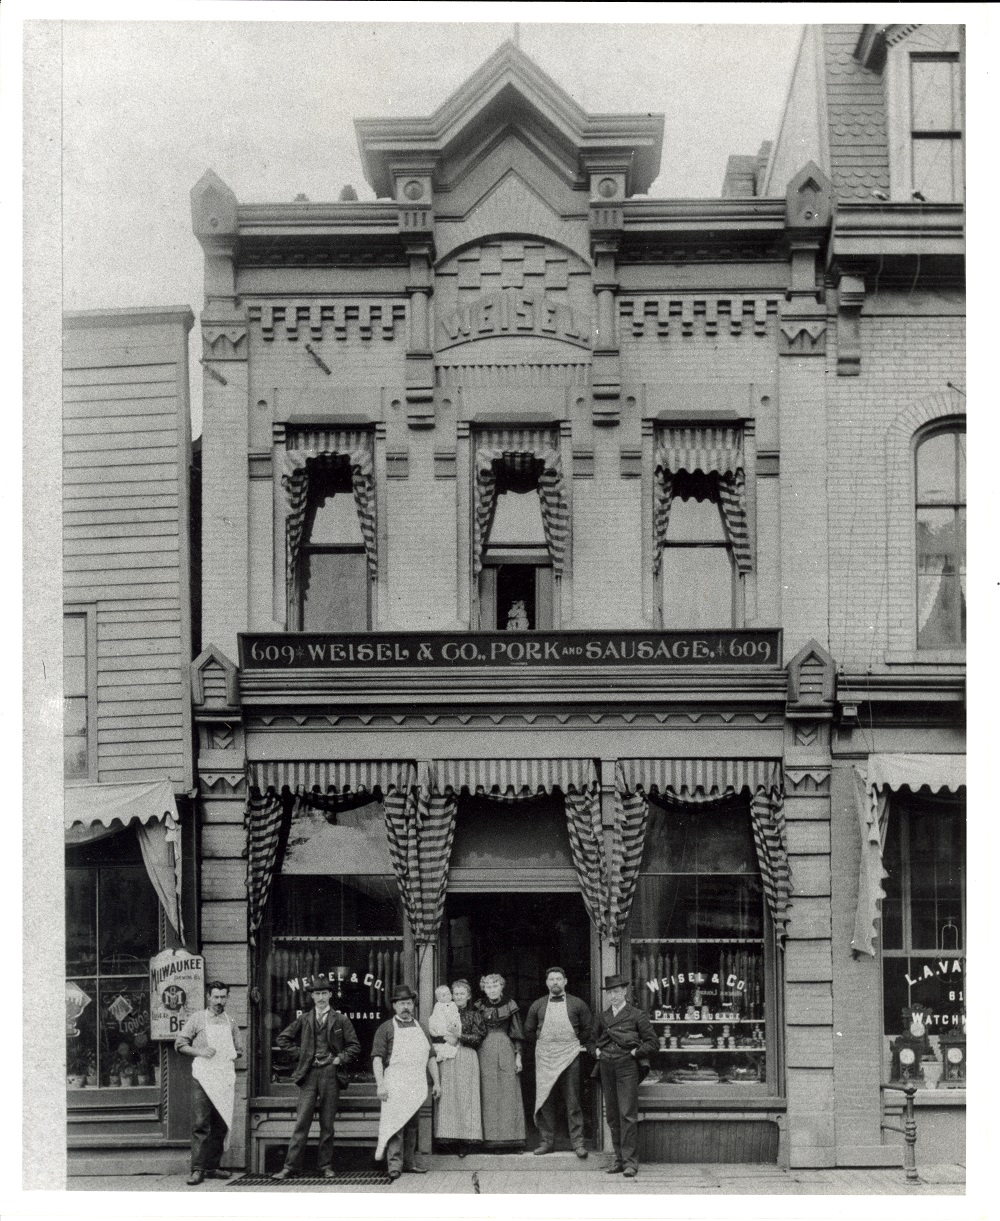 <table class=&quot;lightbox&quot;><tr><td colspan=2 class=&quot;lightbox-title&quot;>Weisel &amp; Company Store</td></tr><tr><td colspan=2 class=&quot;lightbox-caption&quot;>Men and women stand in front of the Weisel &amp; Company store, founded in 1878 and located on Water Street. </td></tr><tr><td colspan=2 class=&quot;lightbox-spacer&quot;></td></tr><tr class=&quot;lightbox-detail&quot;><td class=&quot;cell-title&quot;>Source: </td><td class=&quot;cell-value&quot;>From the Historic Photo Collection of the Milwaukee Public Library. Reprinted with permission. <br /><a href=&quot;http://content.mpl.org/cdm/singleitem/collection/HstoricPho/id/1314/rec/2&quot; target=&quot;_blank&quot;>Milwaukee Public Library</a></td></tr><tr class=&quot;filler-row&quot;><td colspan=2>&nbsp;</td></tr></table>